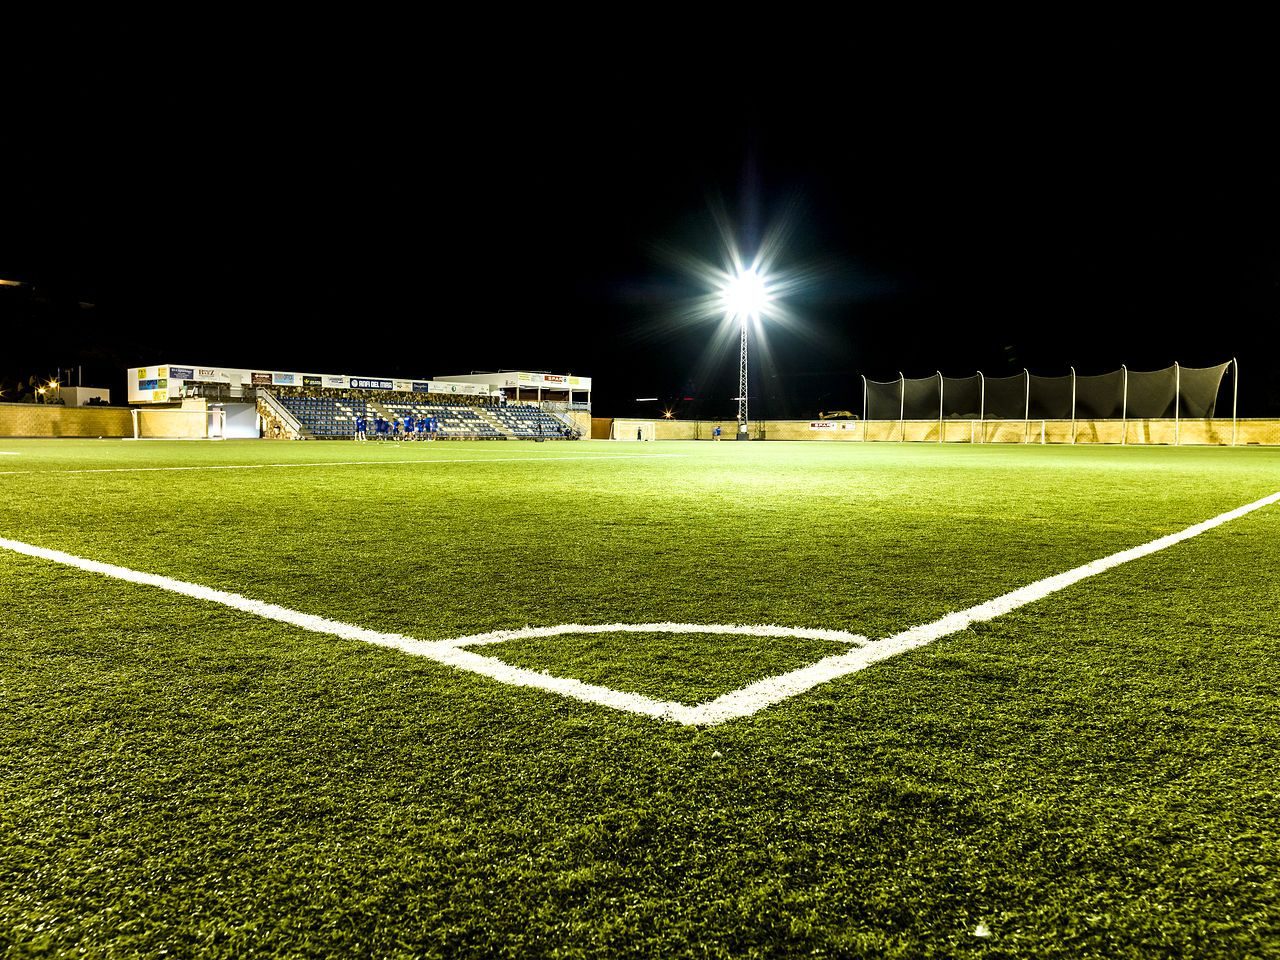 A Football Pitch With Spotlights Football Pitch Football Field